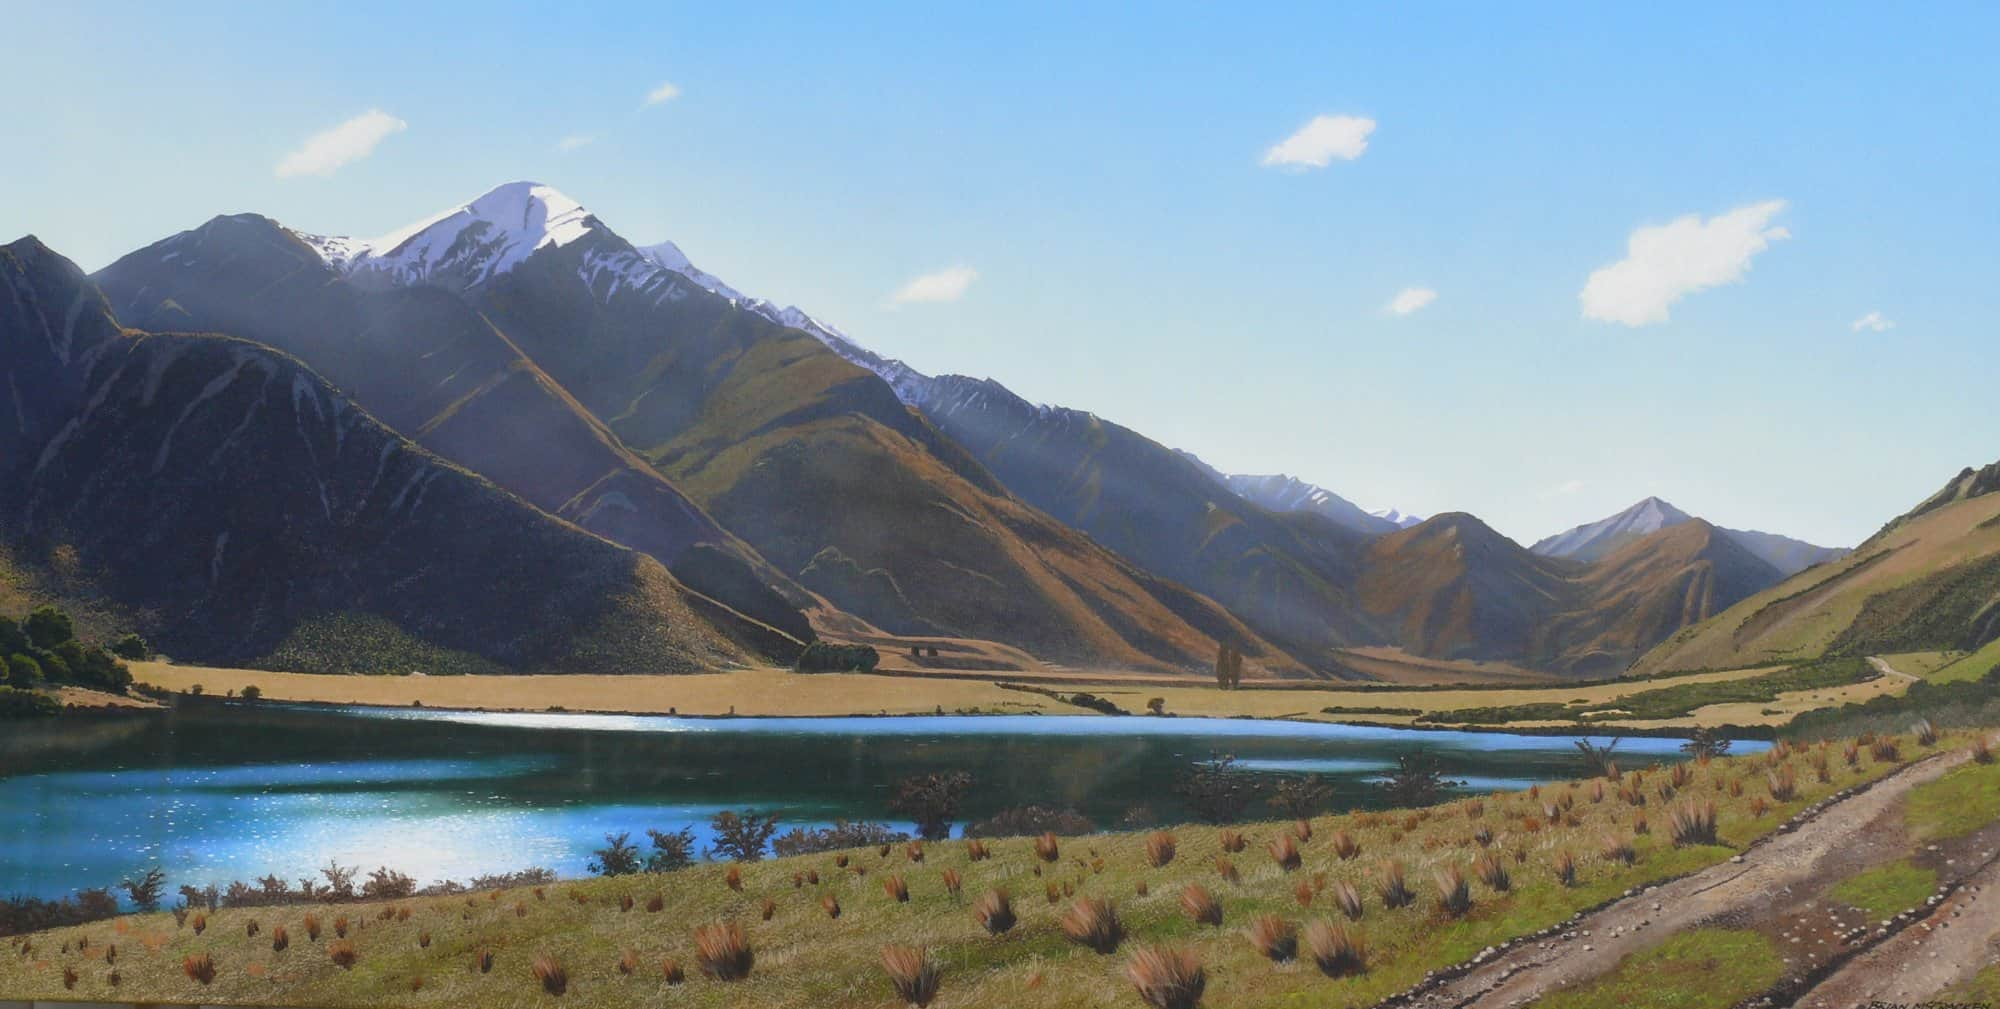 Afternoon at Lake Moke (near Queenstown